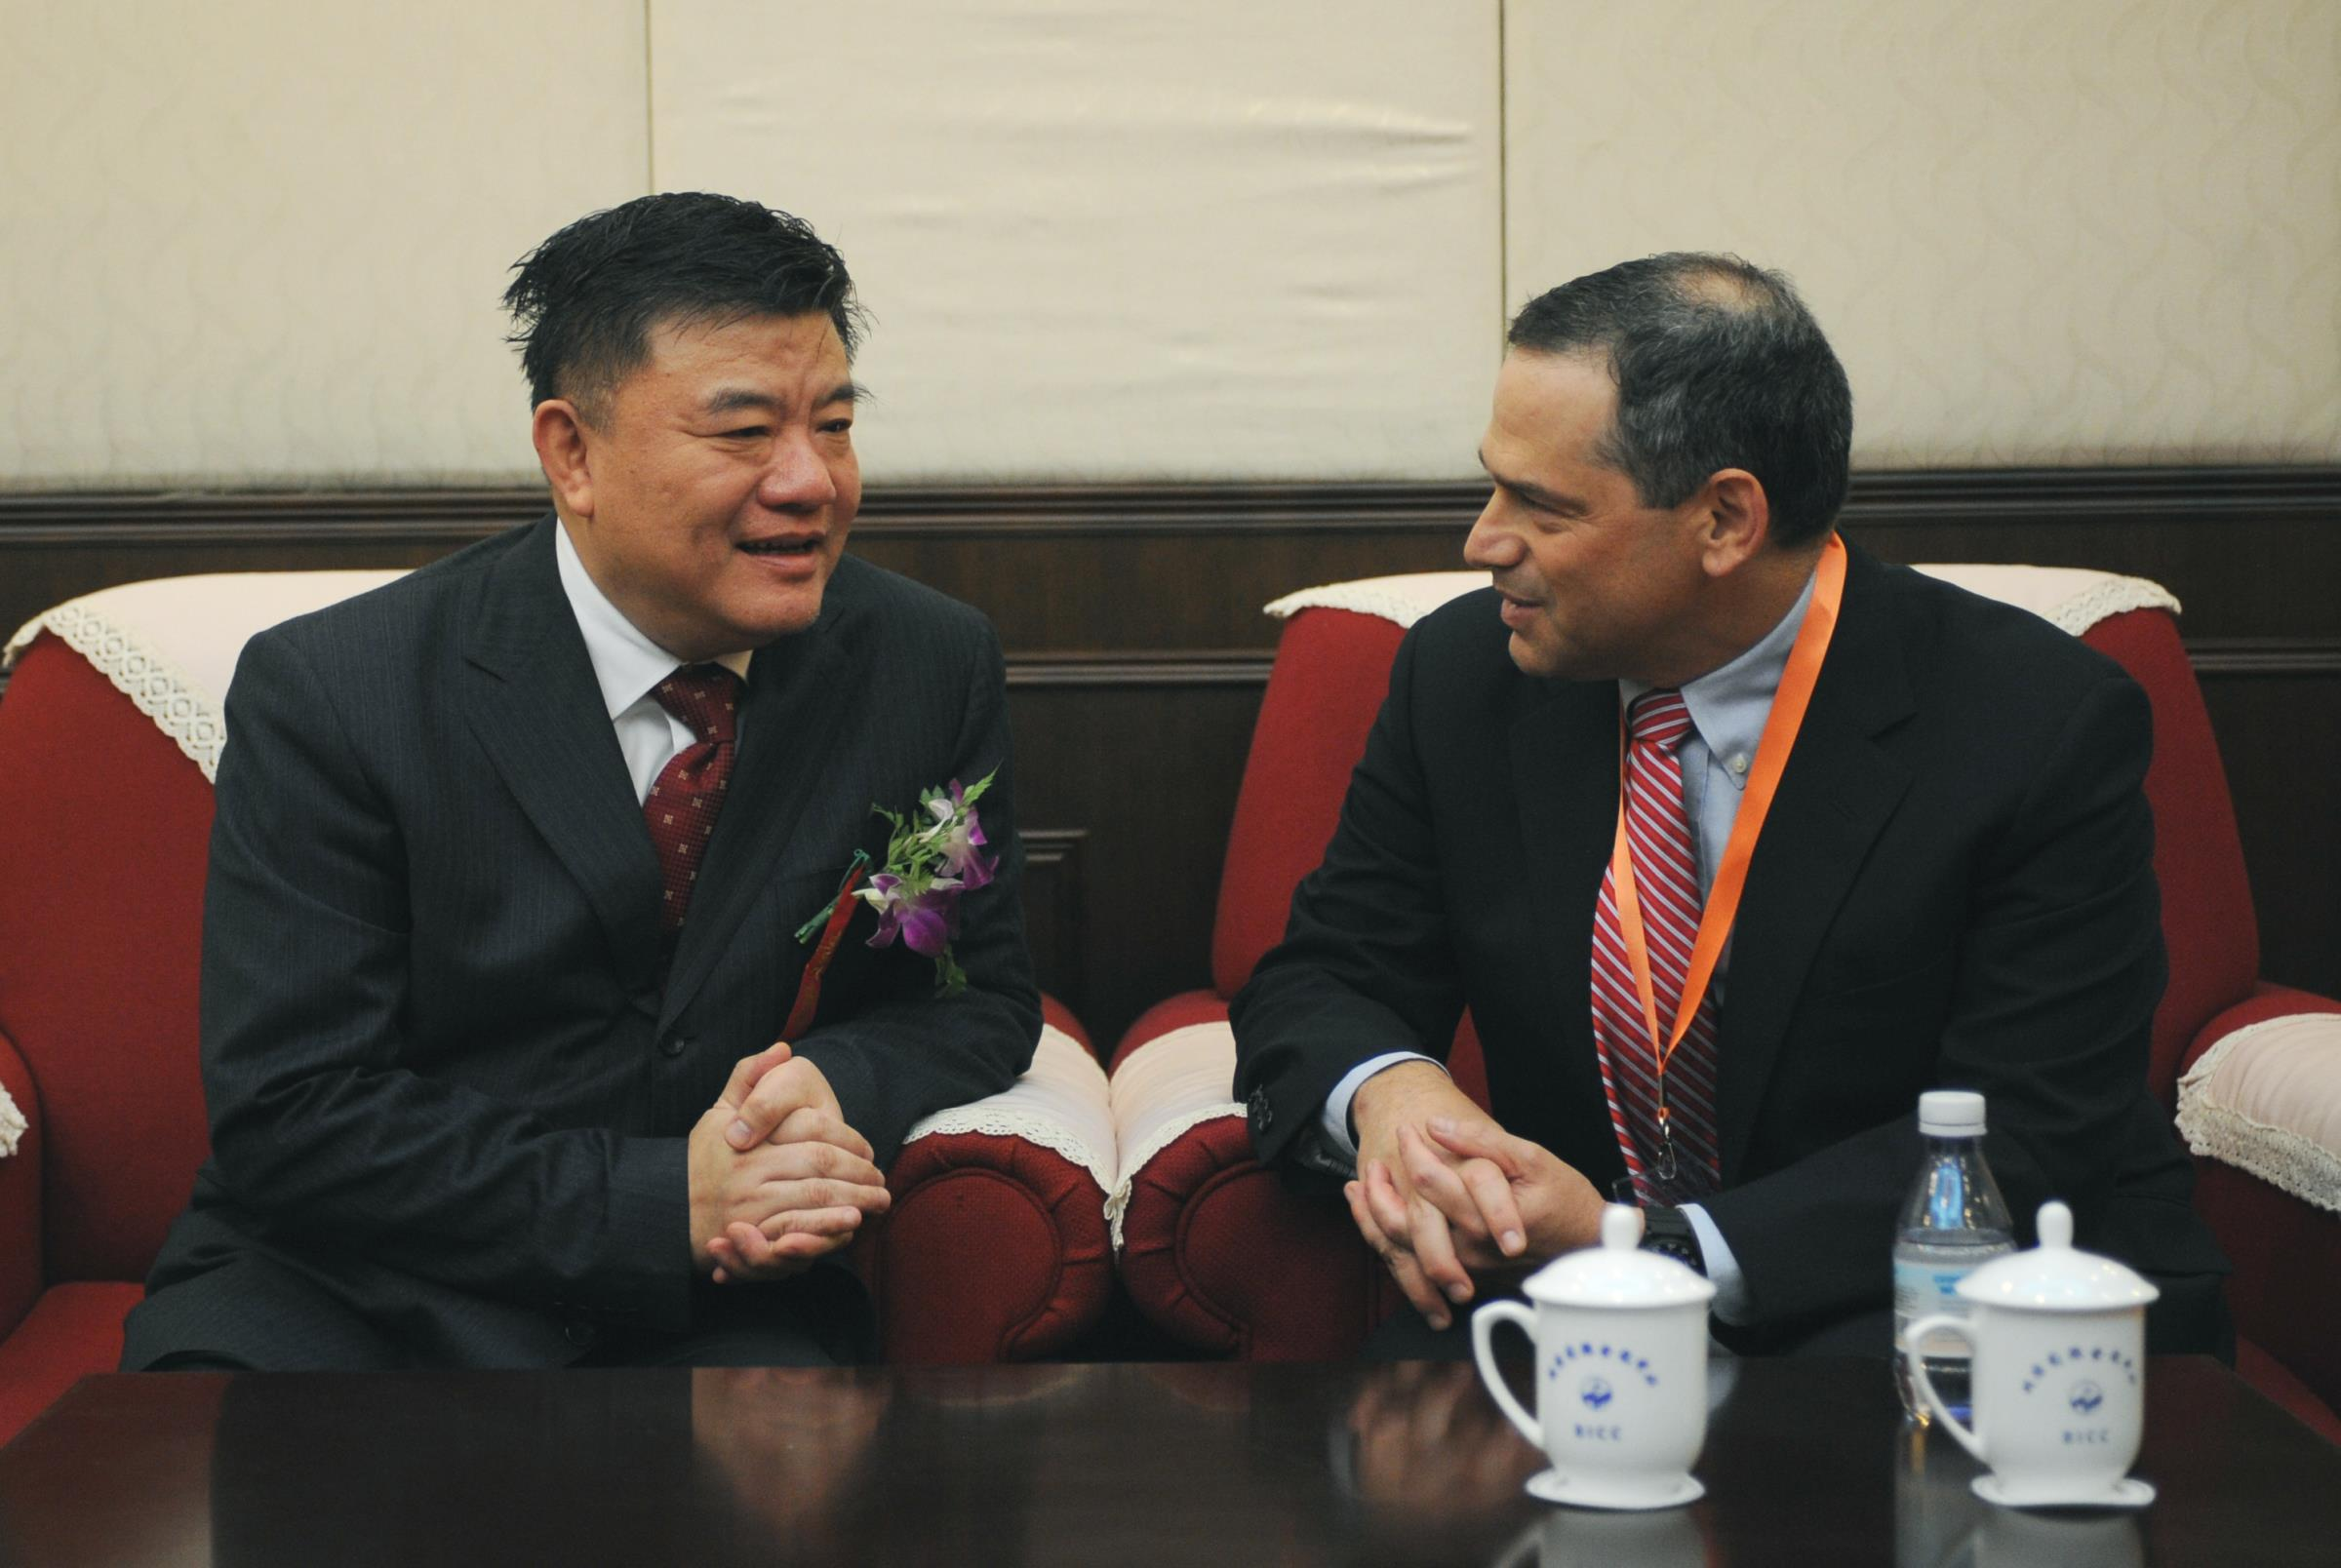 Meeting China's Health Minister